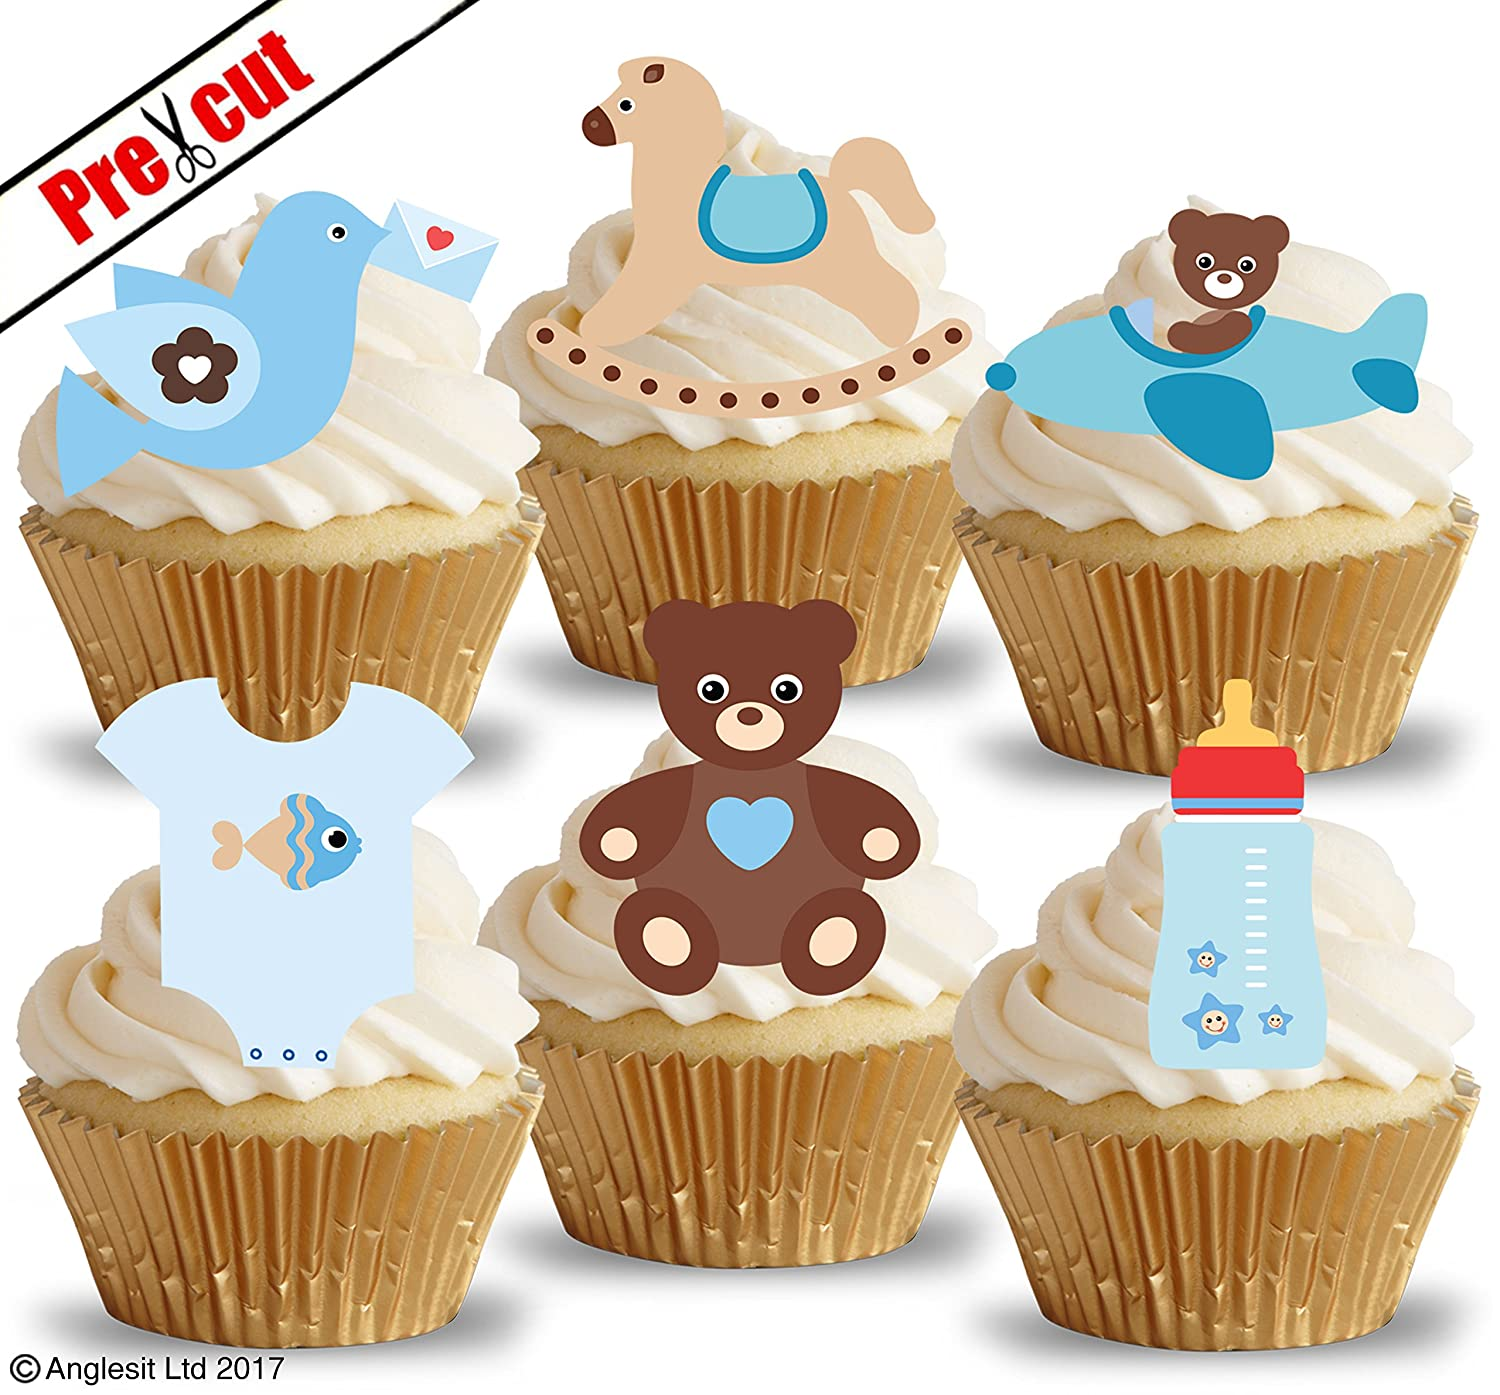 PRE-CUT CUTE BABY BOY TOYS & ACCESSORIES V. EDIBLE RICE / WAFER PAPER CUPCAKE  CAKE TOPPERS PARTY IT'S A BOY BABY SHOWER BIRTHDAY KIDS CHILDREN DECORATIONS